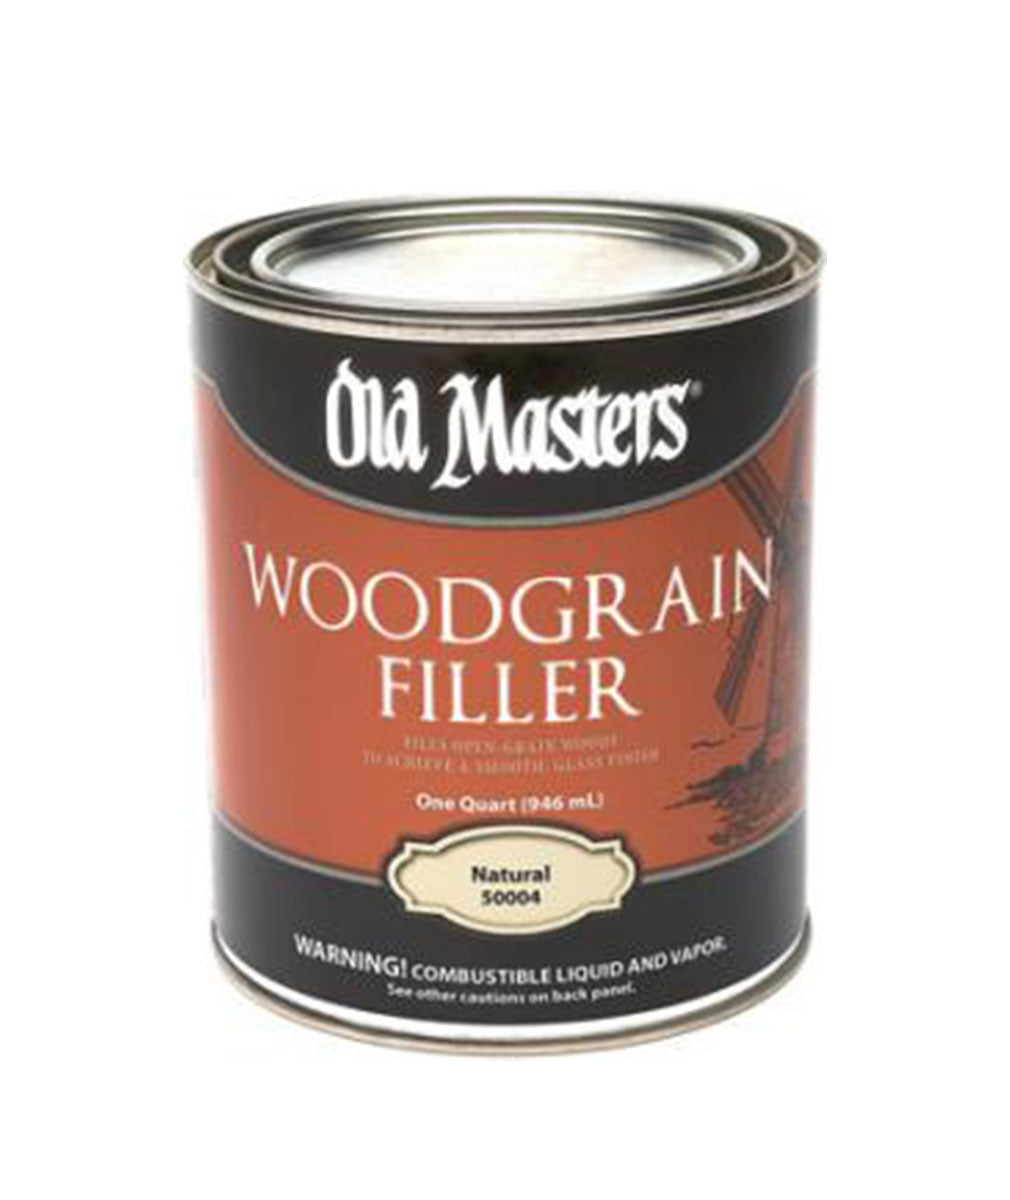 Old Masters Woodgrain Filler, available at Clement's Paint in Austin, TX.